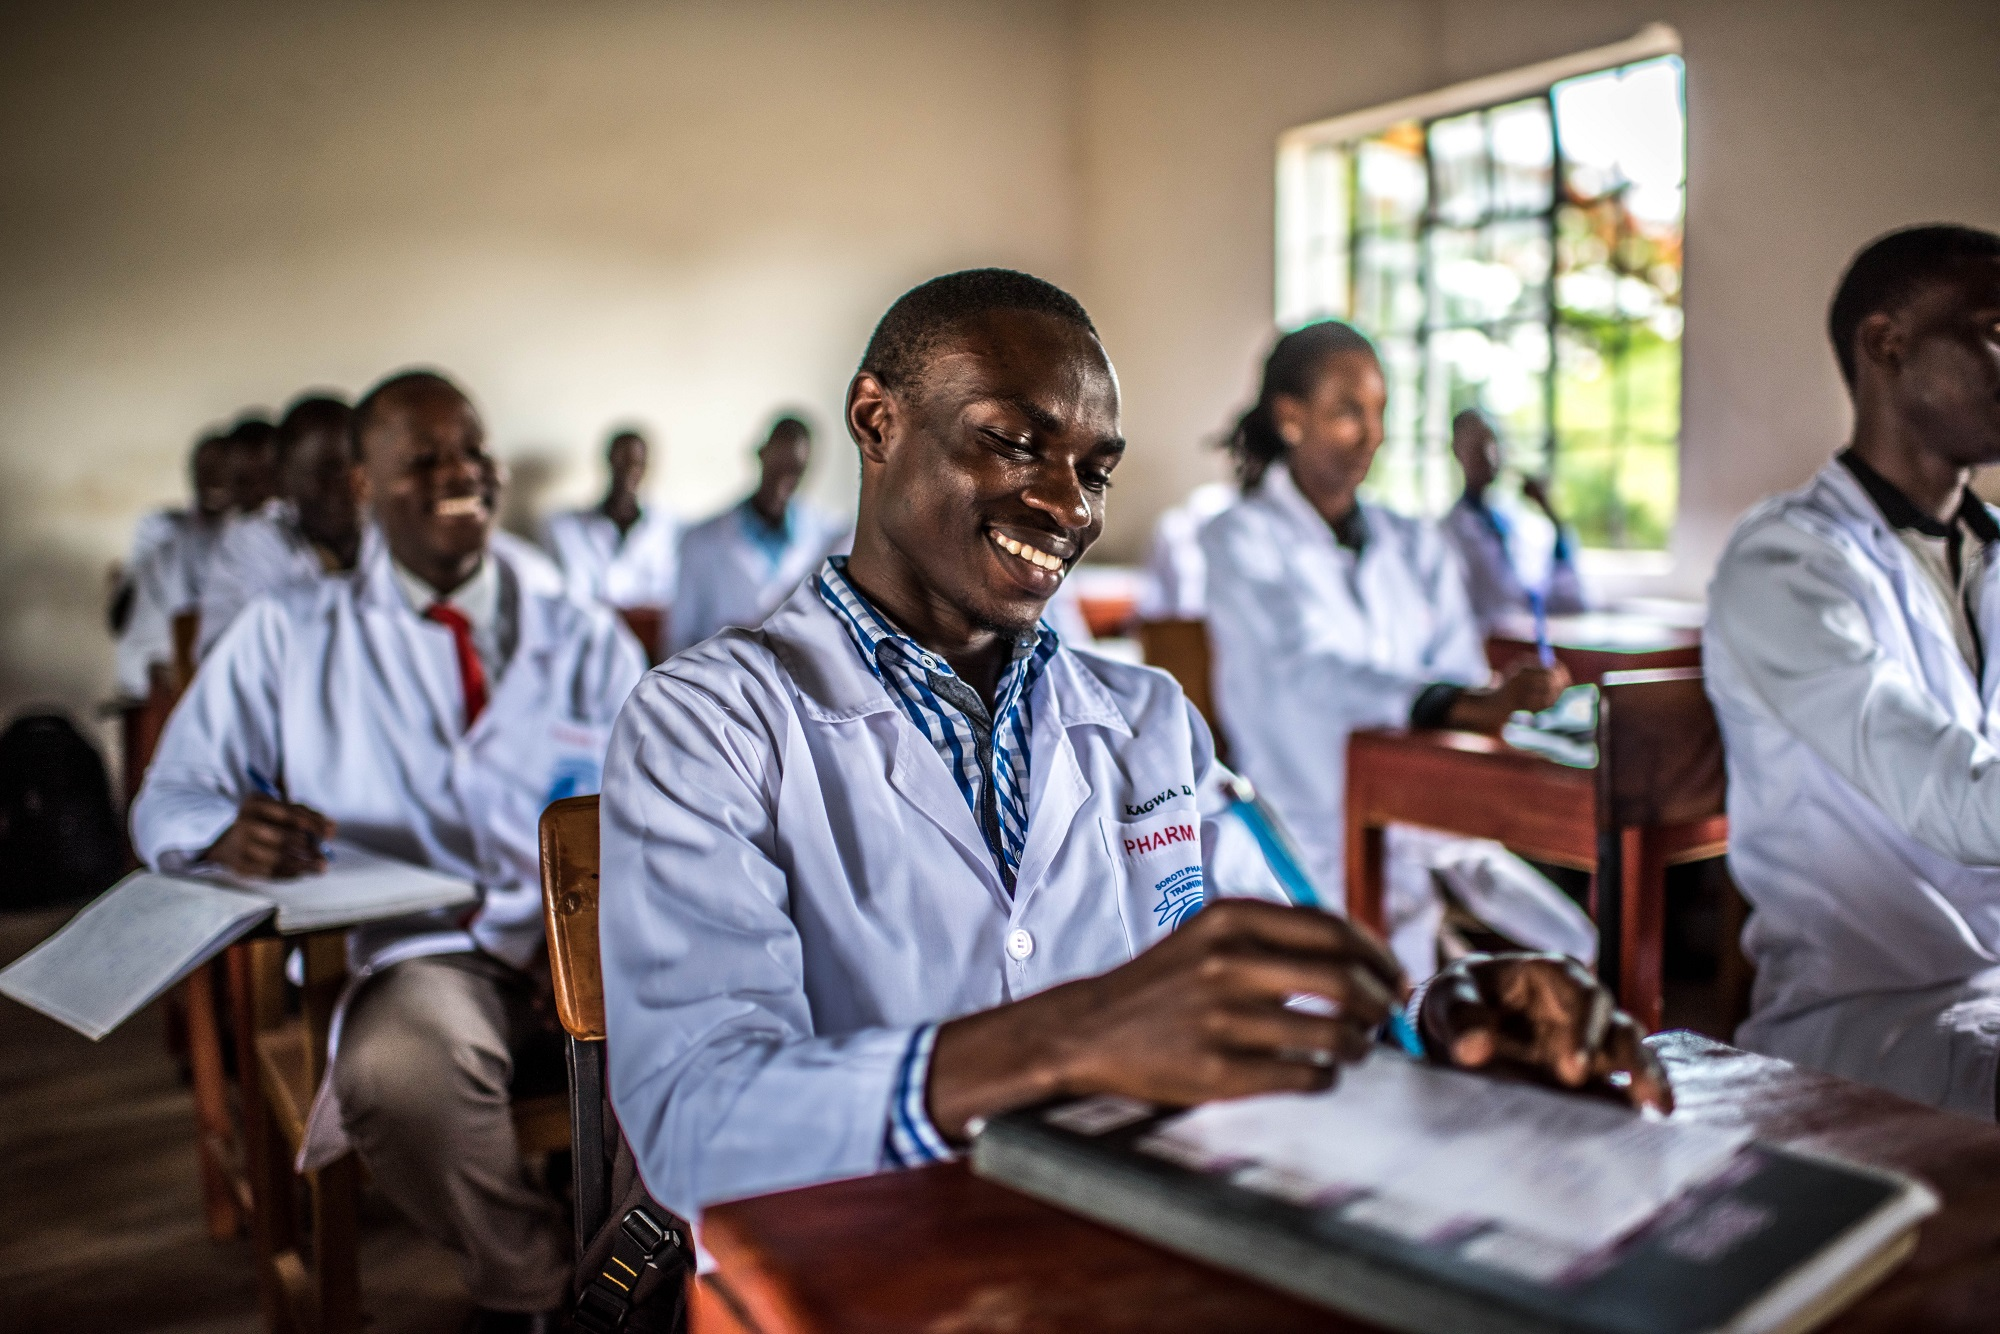 Students attend a class at the Soroti Pharmacy School.